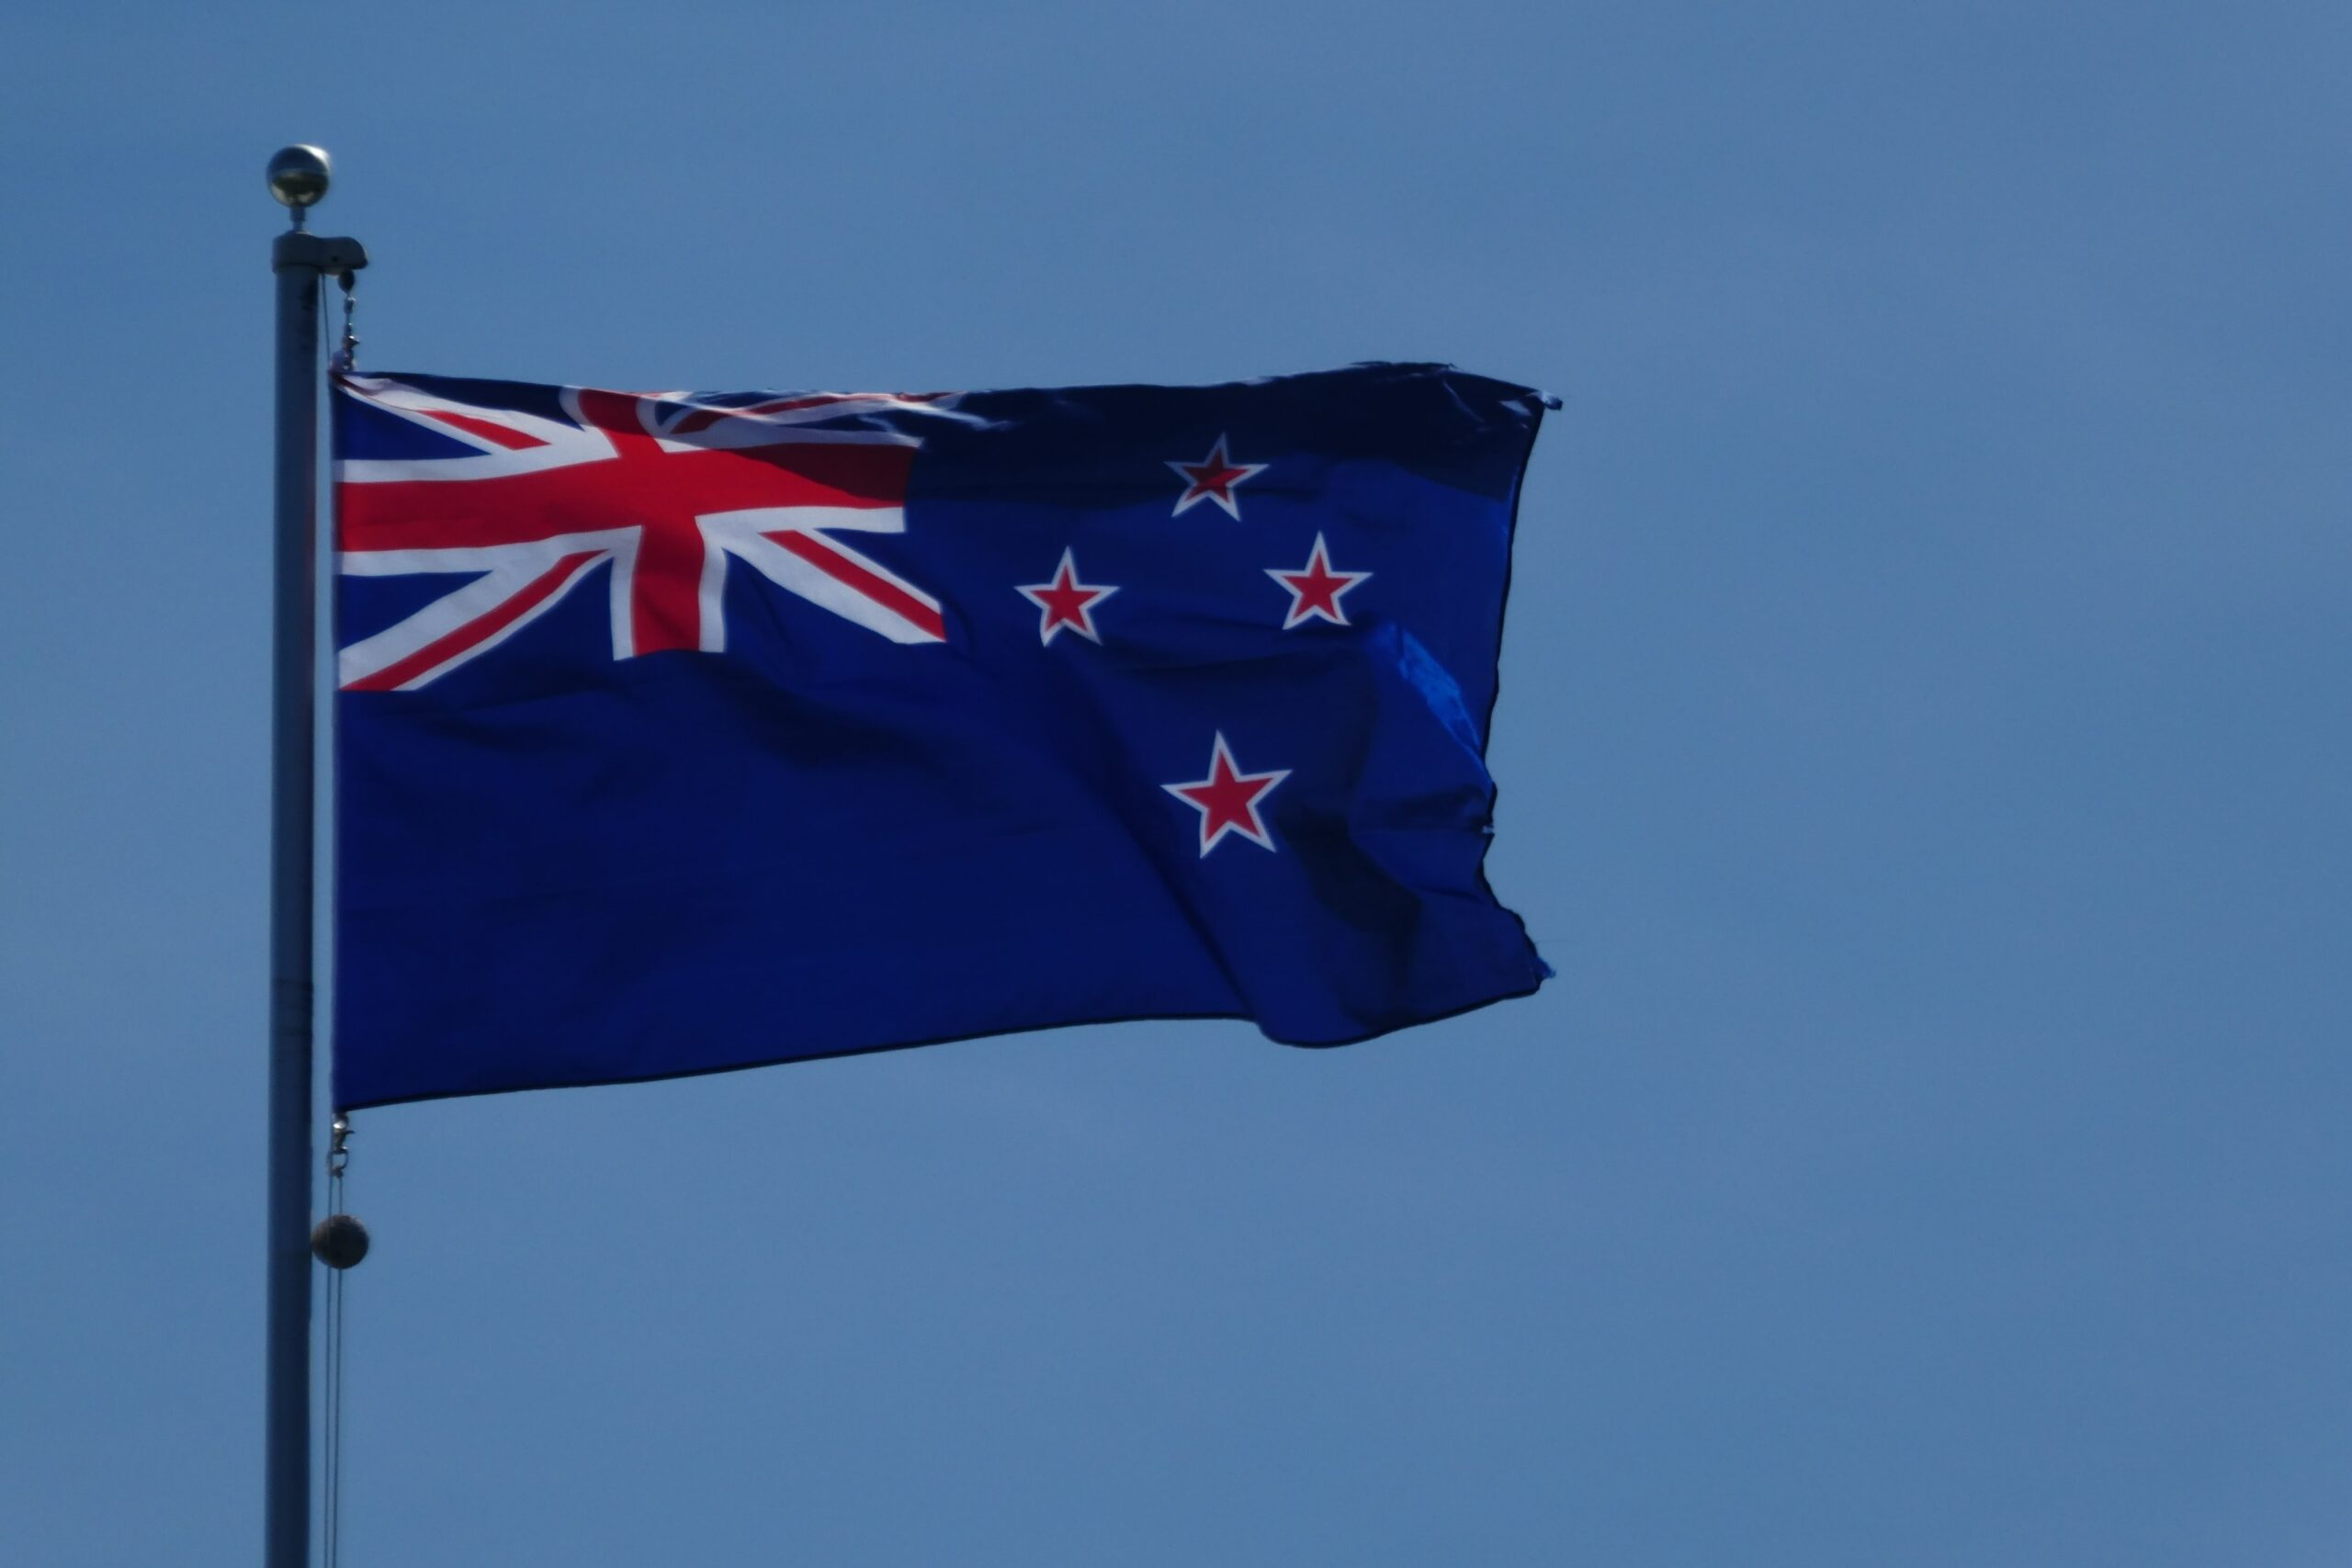 the new zealand flag on a flagpole against a blue sky